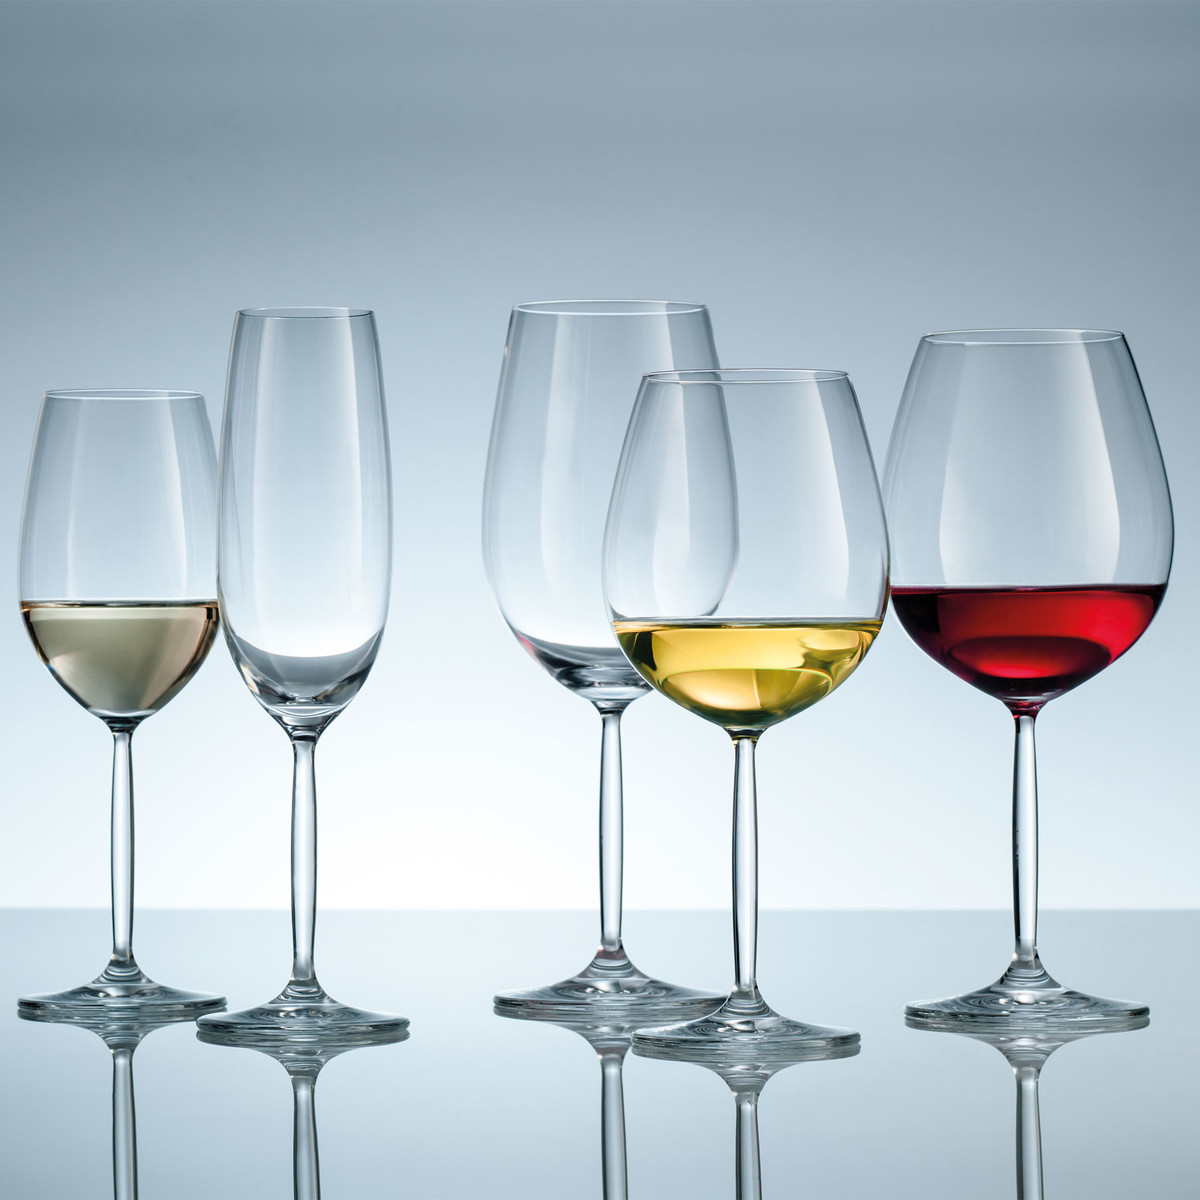 Schott Zwiesel Wine Glasses | Schott Zwiesel Wine Glasses Reviews | German Schott Glass